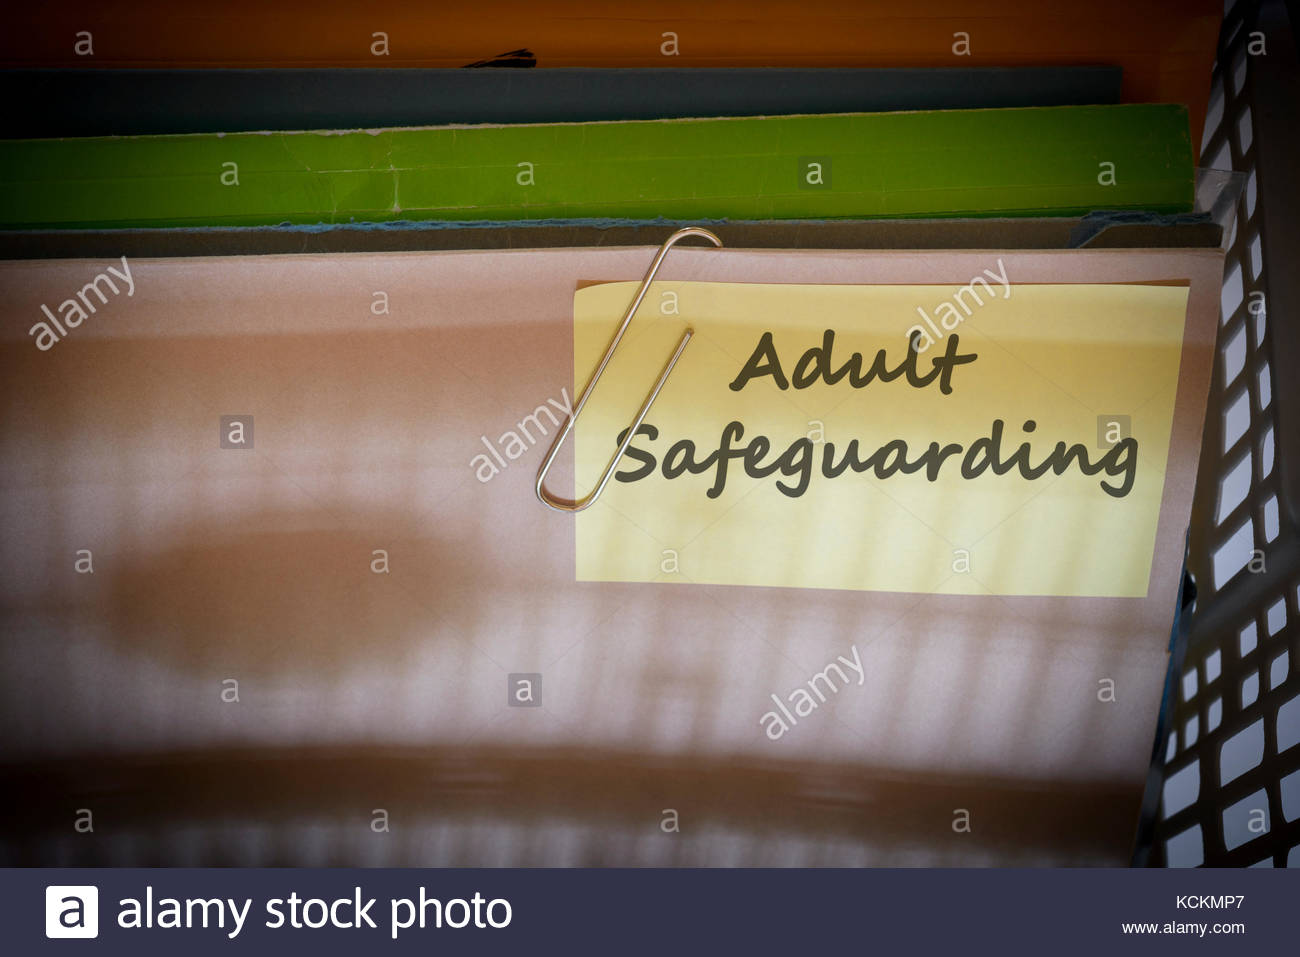 Adult Safeguarding written on document folder, Dorset, England. - Stock Image